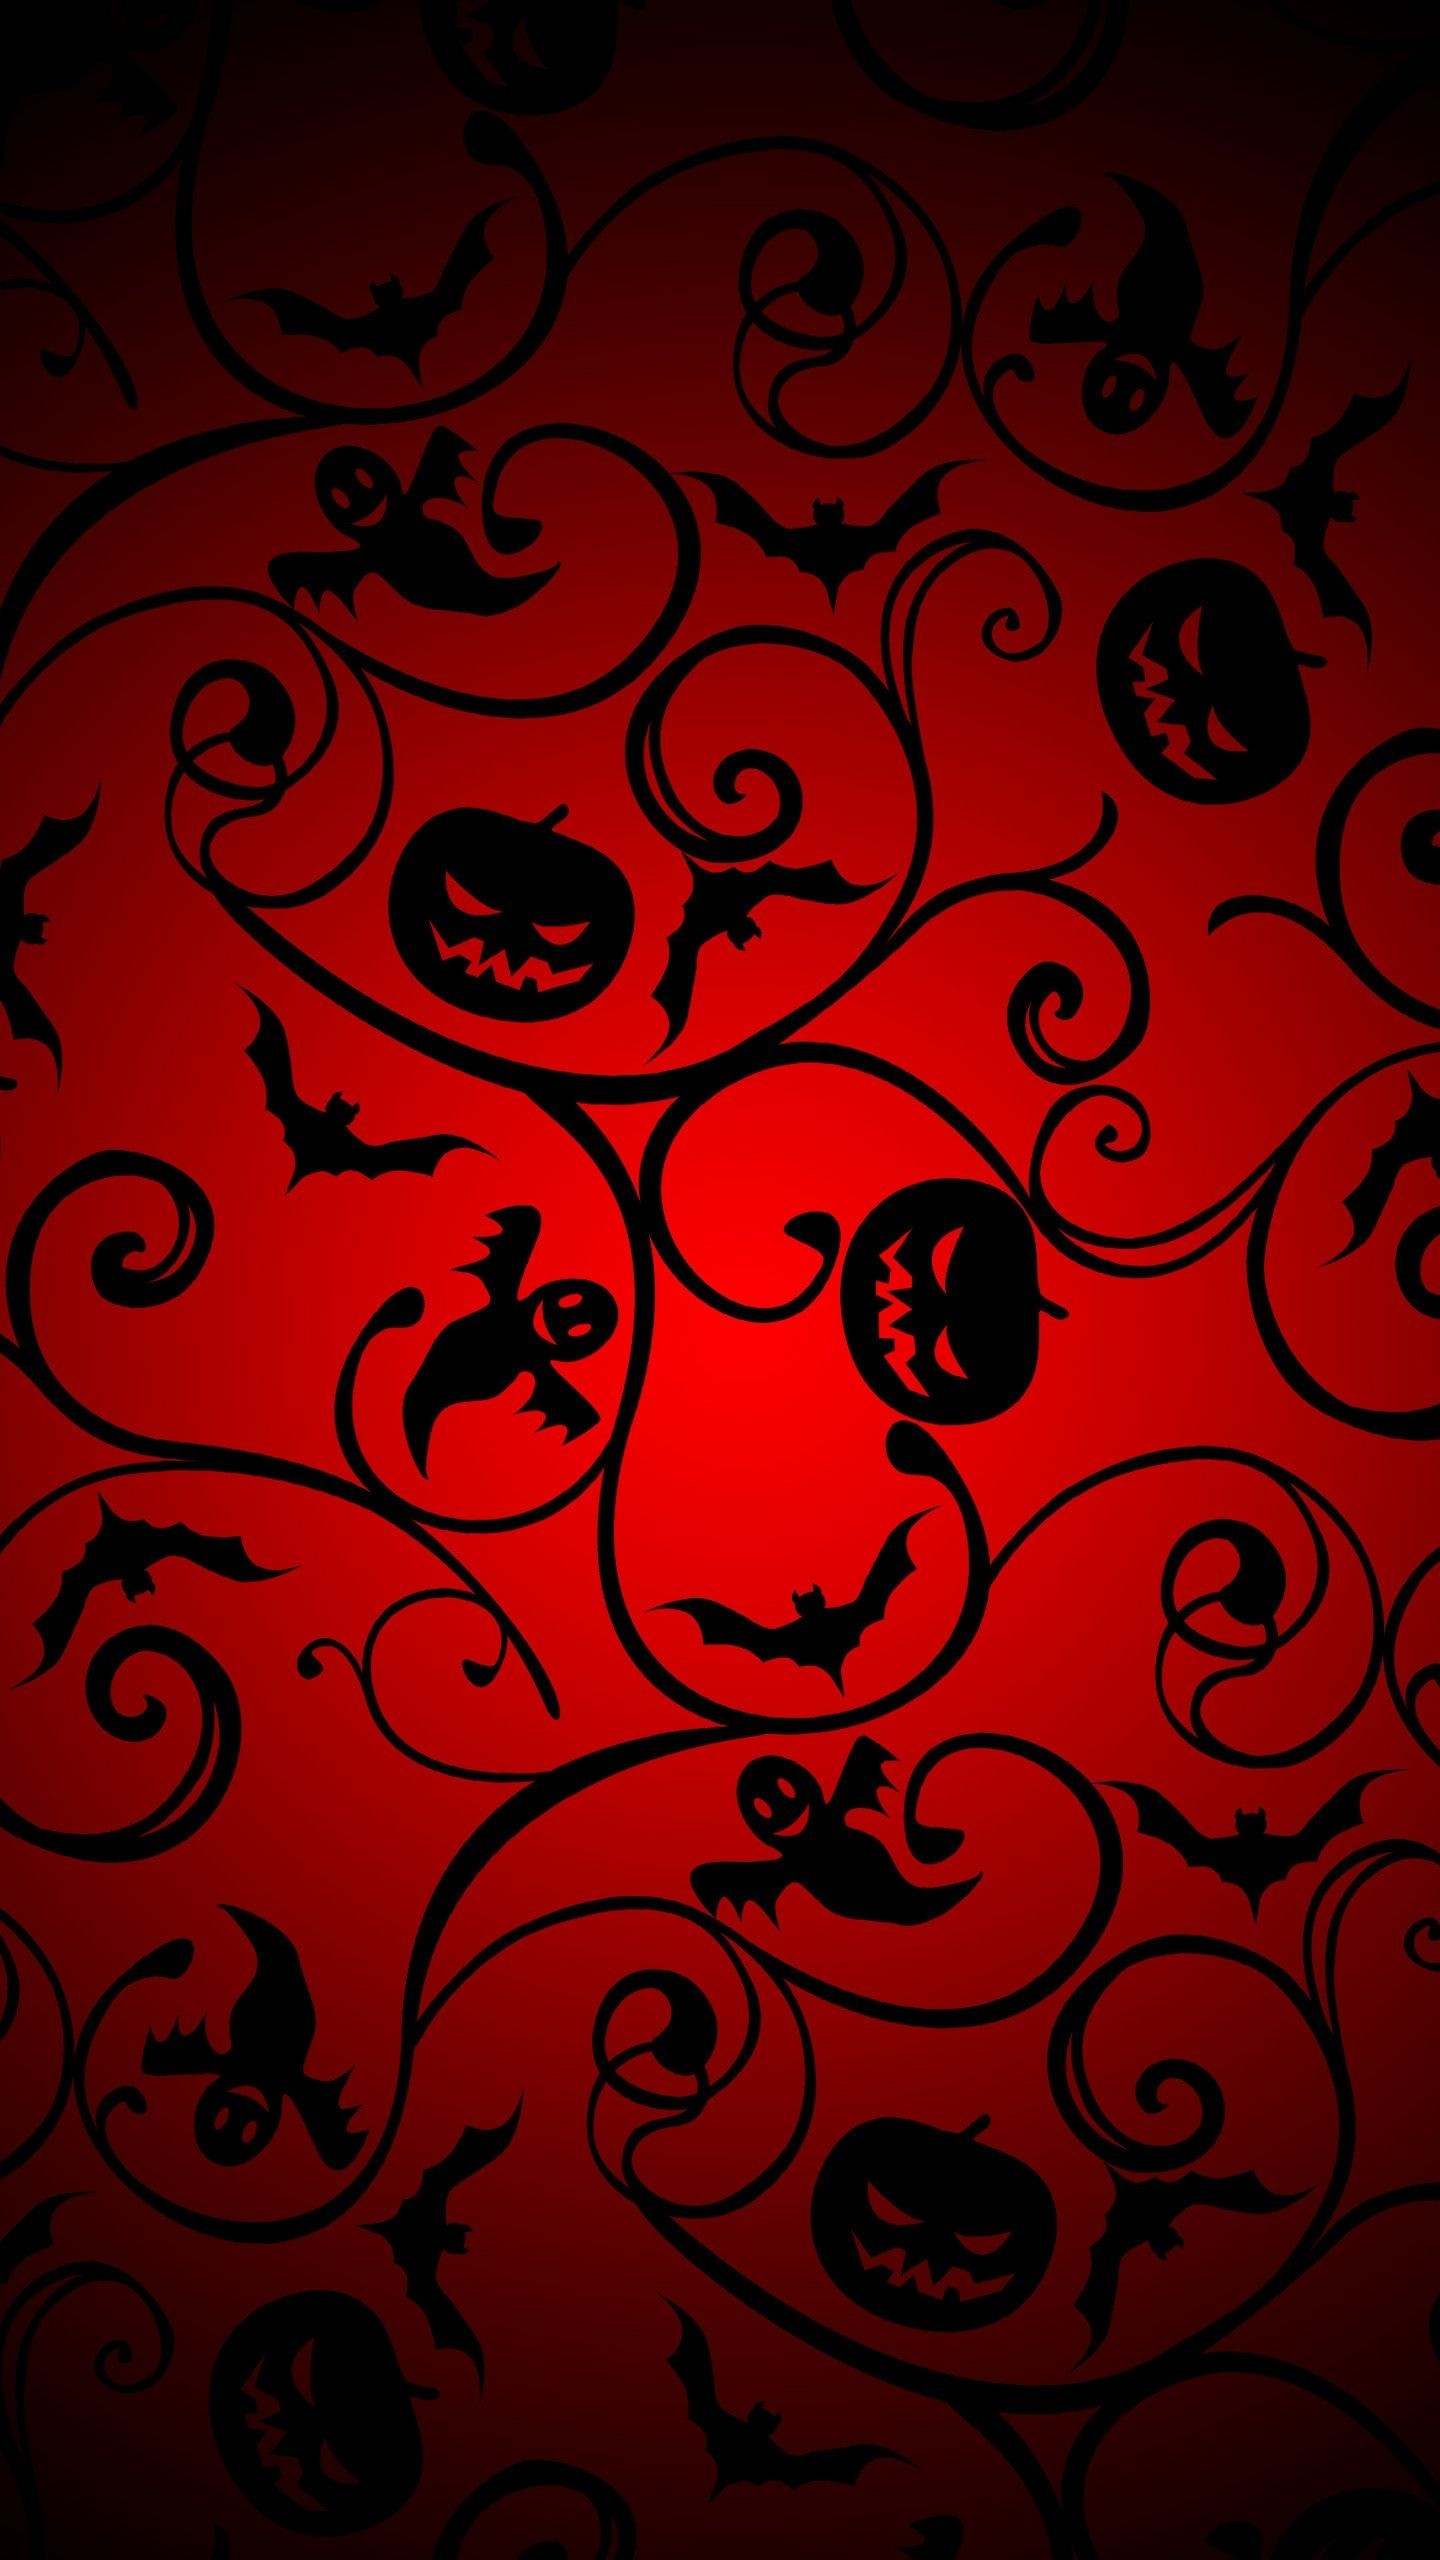 Simple Wallpaper Halloween Galaxy - halloween-pattern-2-wallpaper-background-1440x2560  Trends_279570.jpg